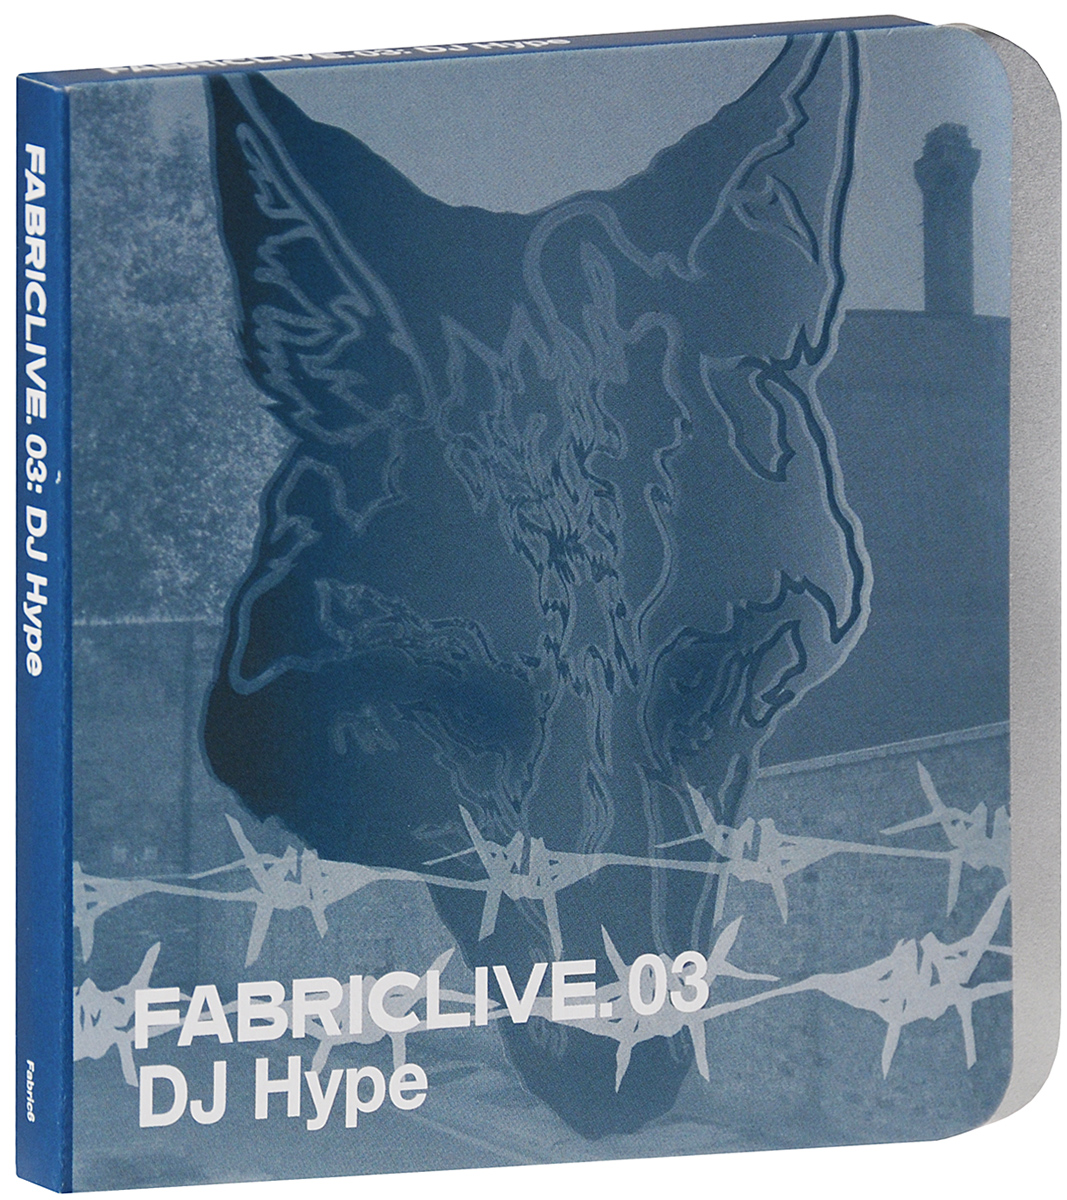 Moving Fusion,Mist:I:Cal,Dei3c,DJ Zinc,Total Science,The Trinity,Future Prophecies,Bonafide,DJ Hype,DJ Krust,DJ Pascal,Shimon,Andy C DJ Hype. Fabriclive. 03 рюкзак hype hype hy004bwaojp4